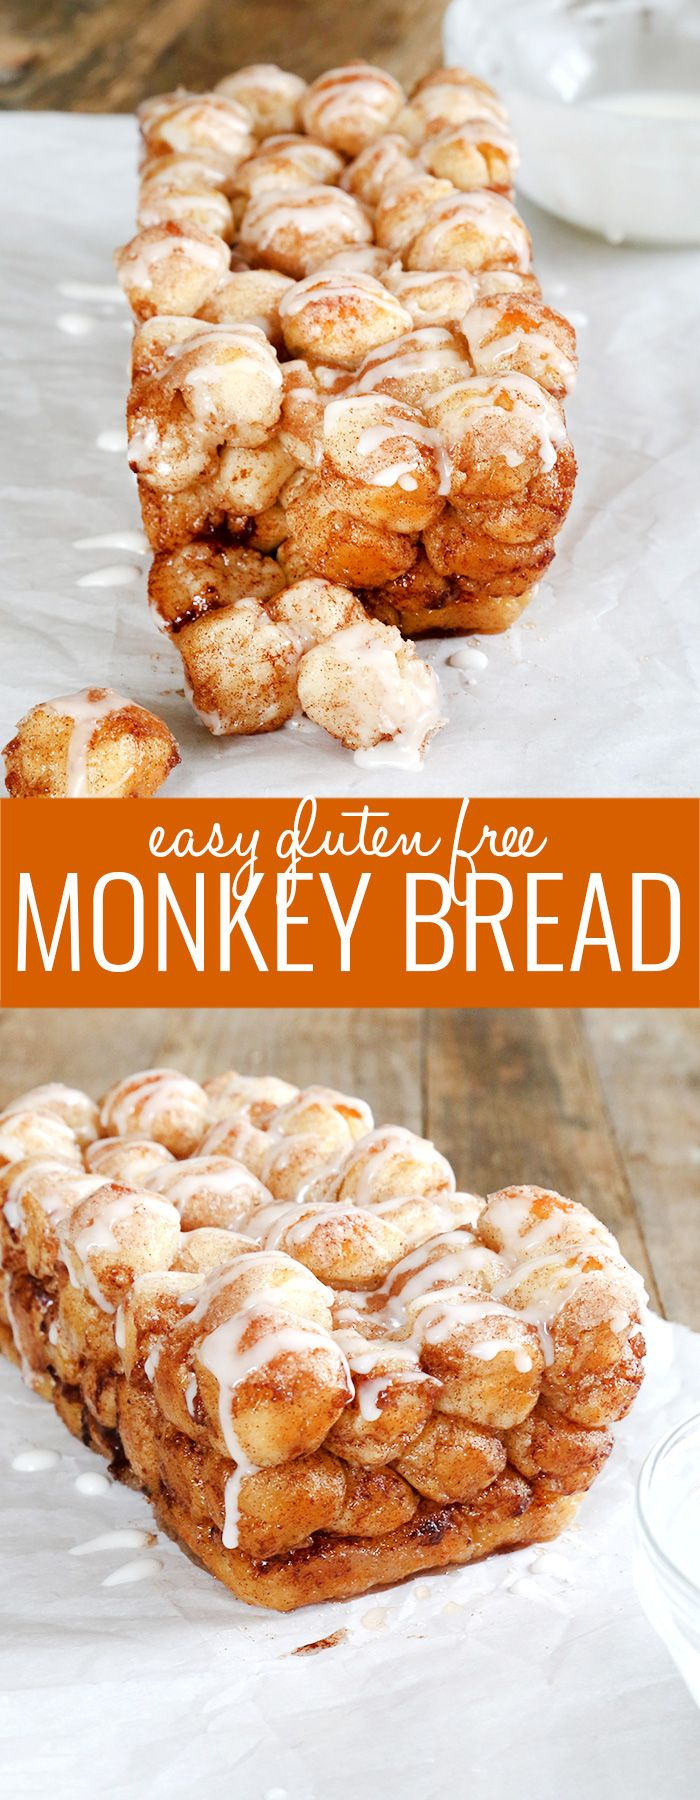 Get this tested recipe for a super easy version of gluten free monkey bread. Made from gluten free pizza dough!